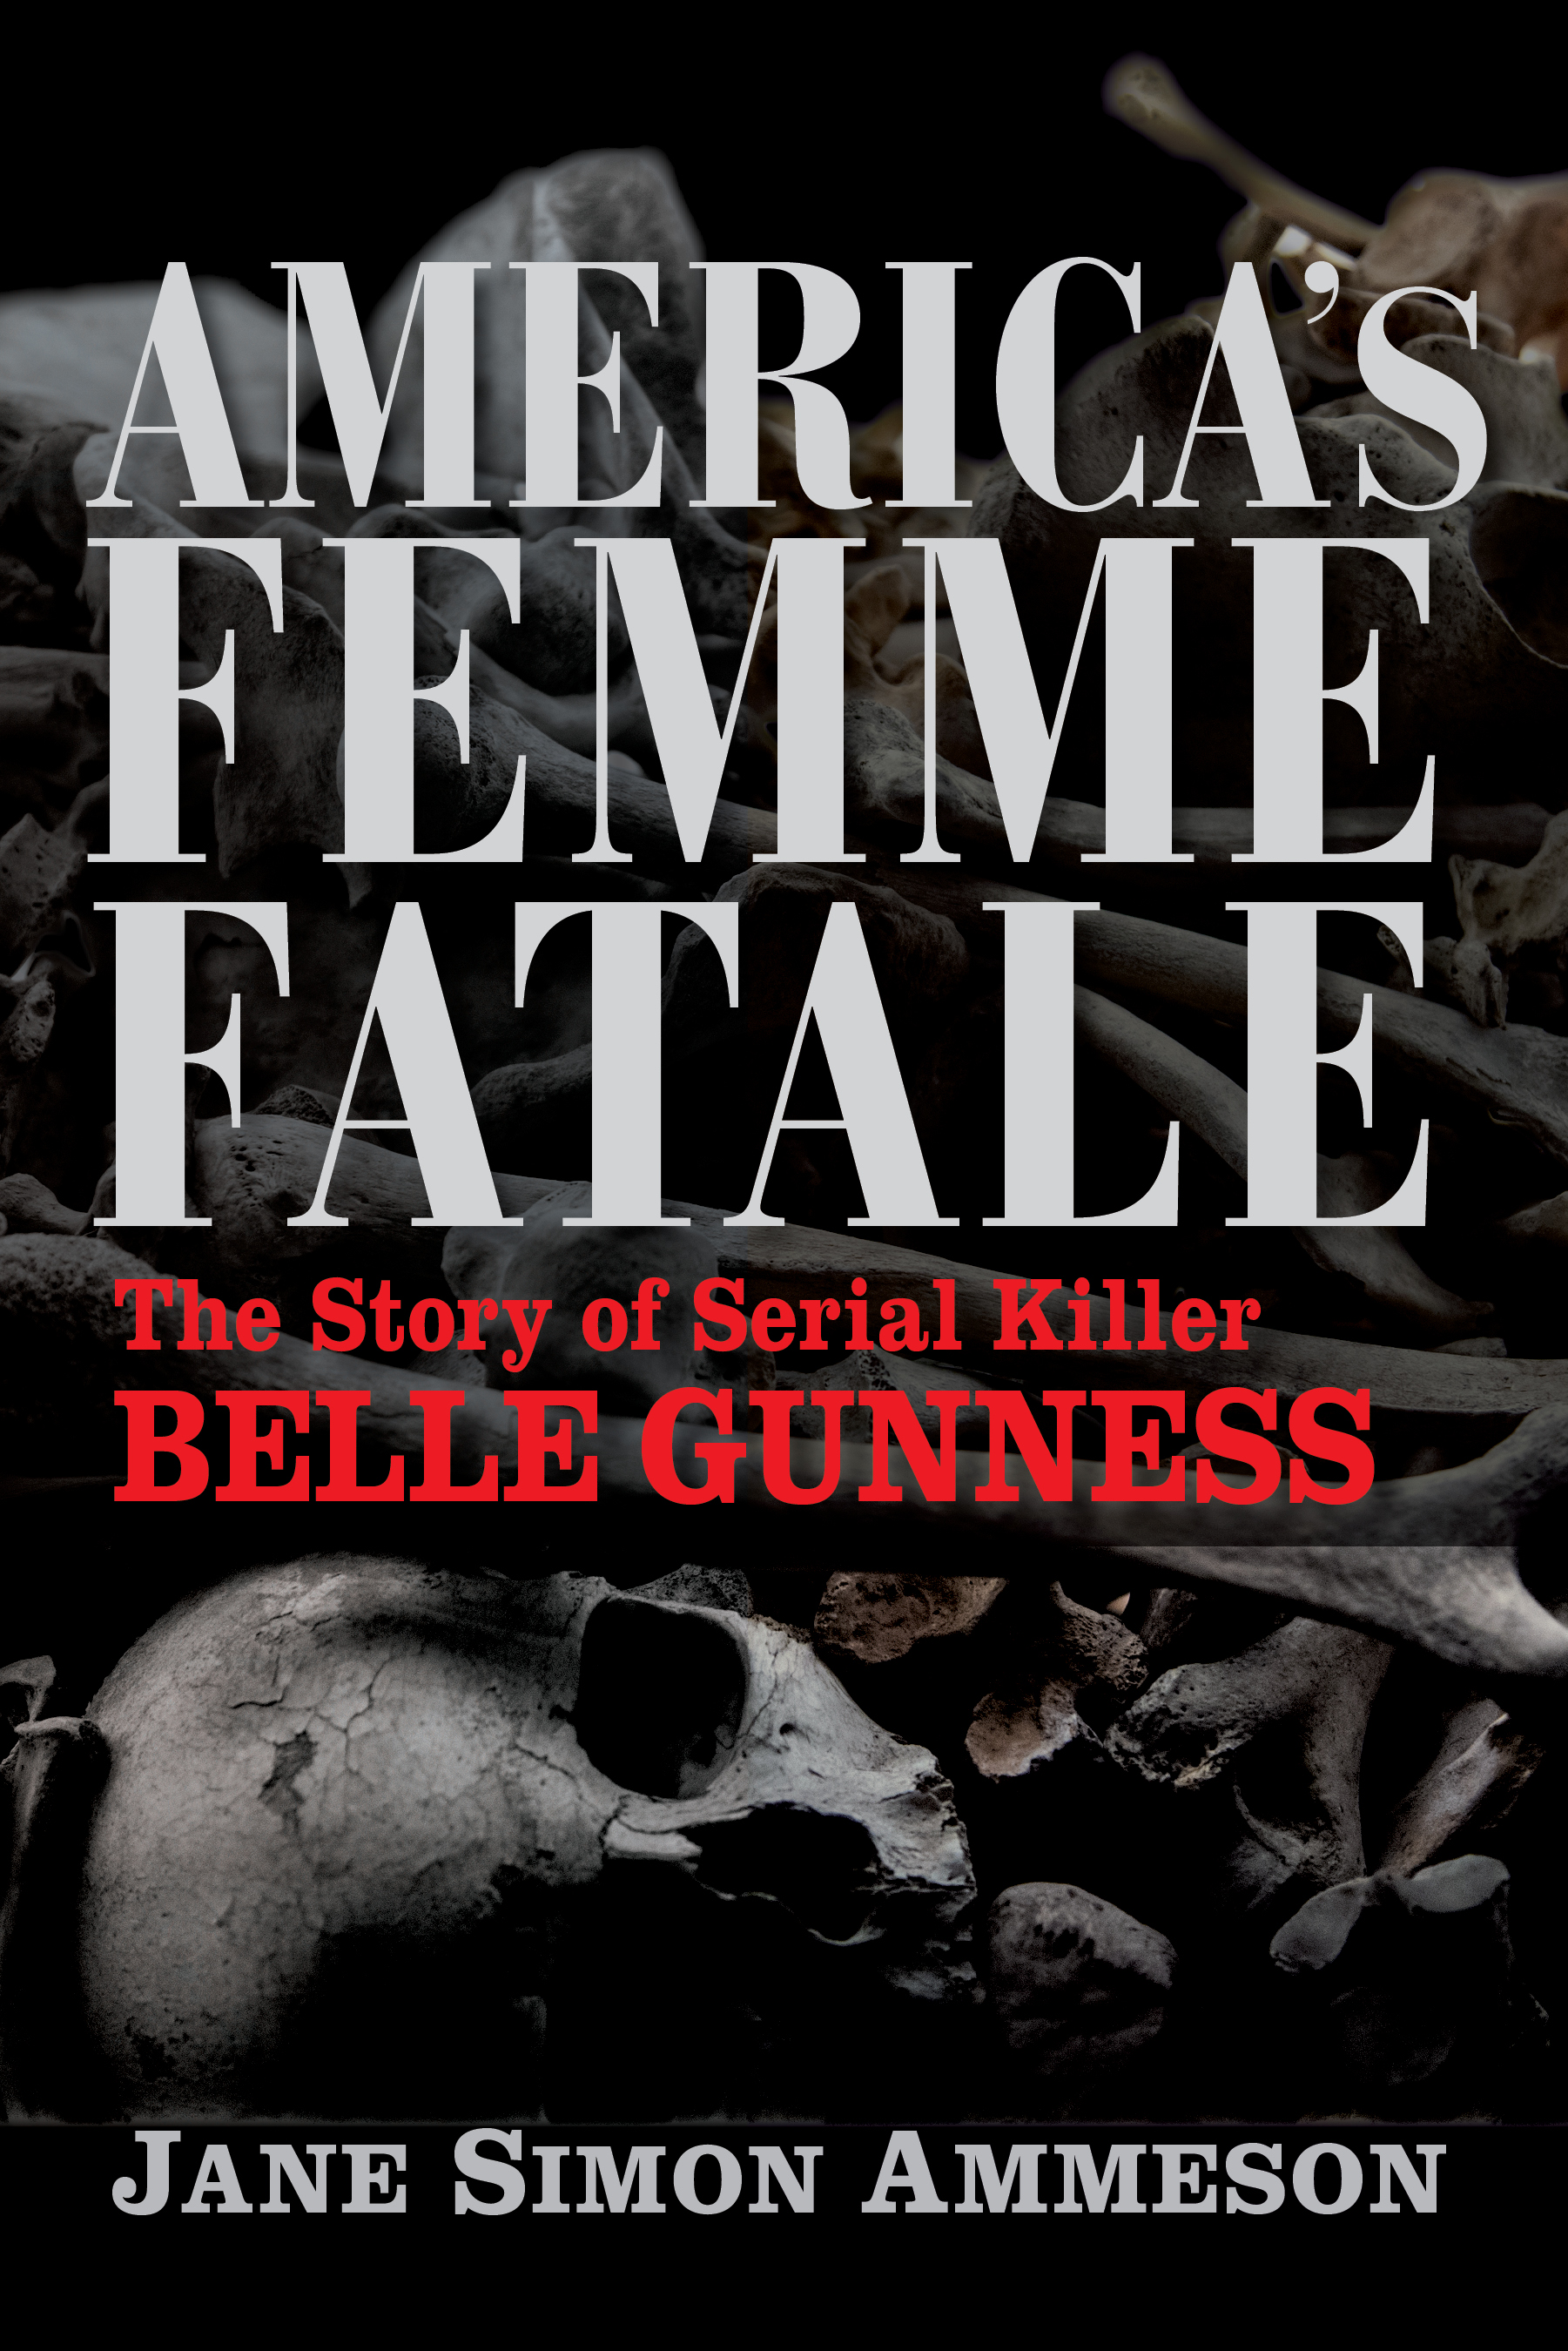 Win a Free Copy of America's Femme Fatale: The Story of Serial Killer Belle Gunness